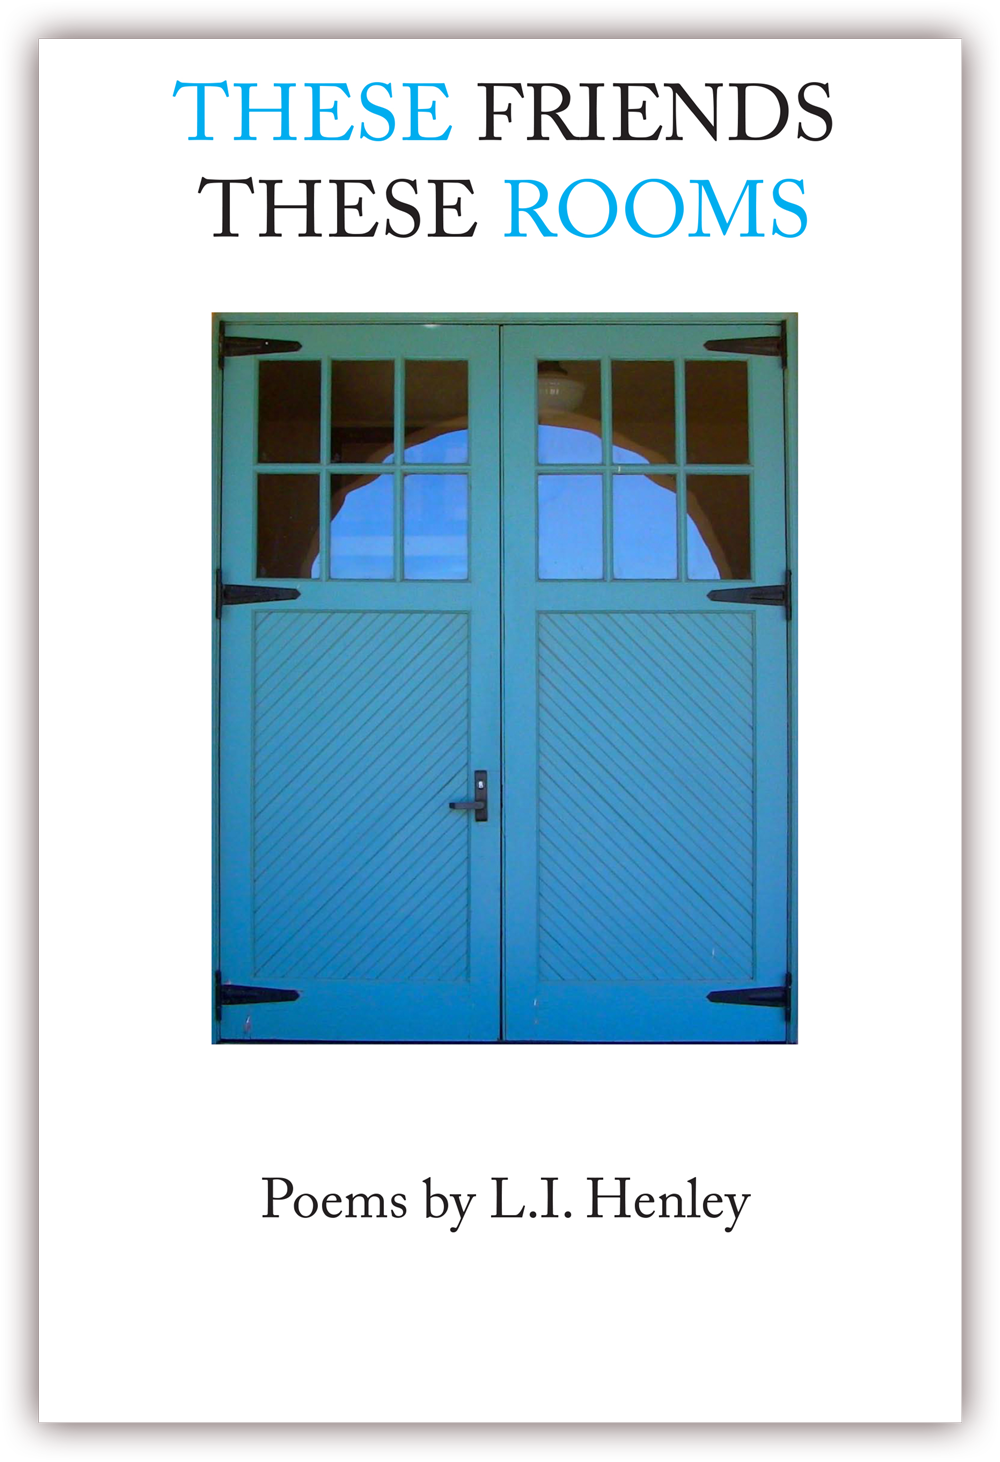 These Friends These Rooms    (front cover)   Poems by L. I. Henley   CLICK IMAGE TO ENLARGE